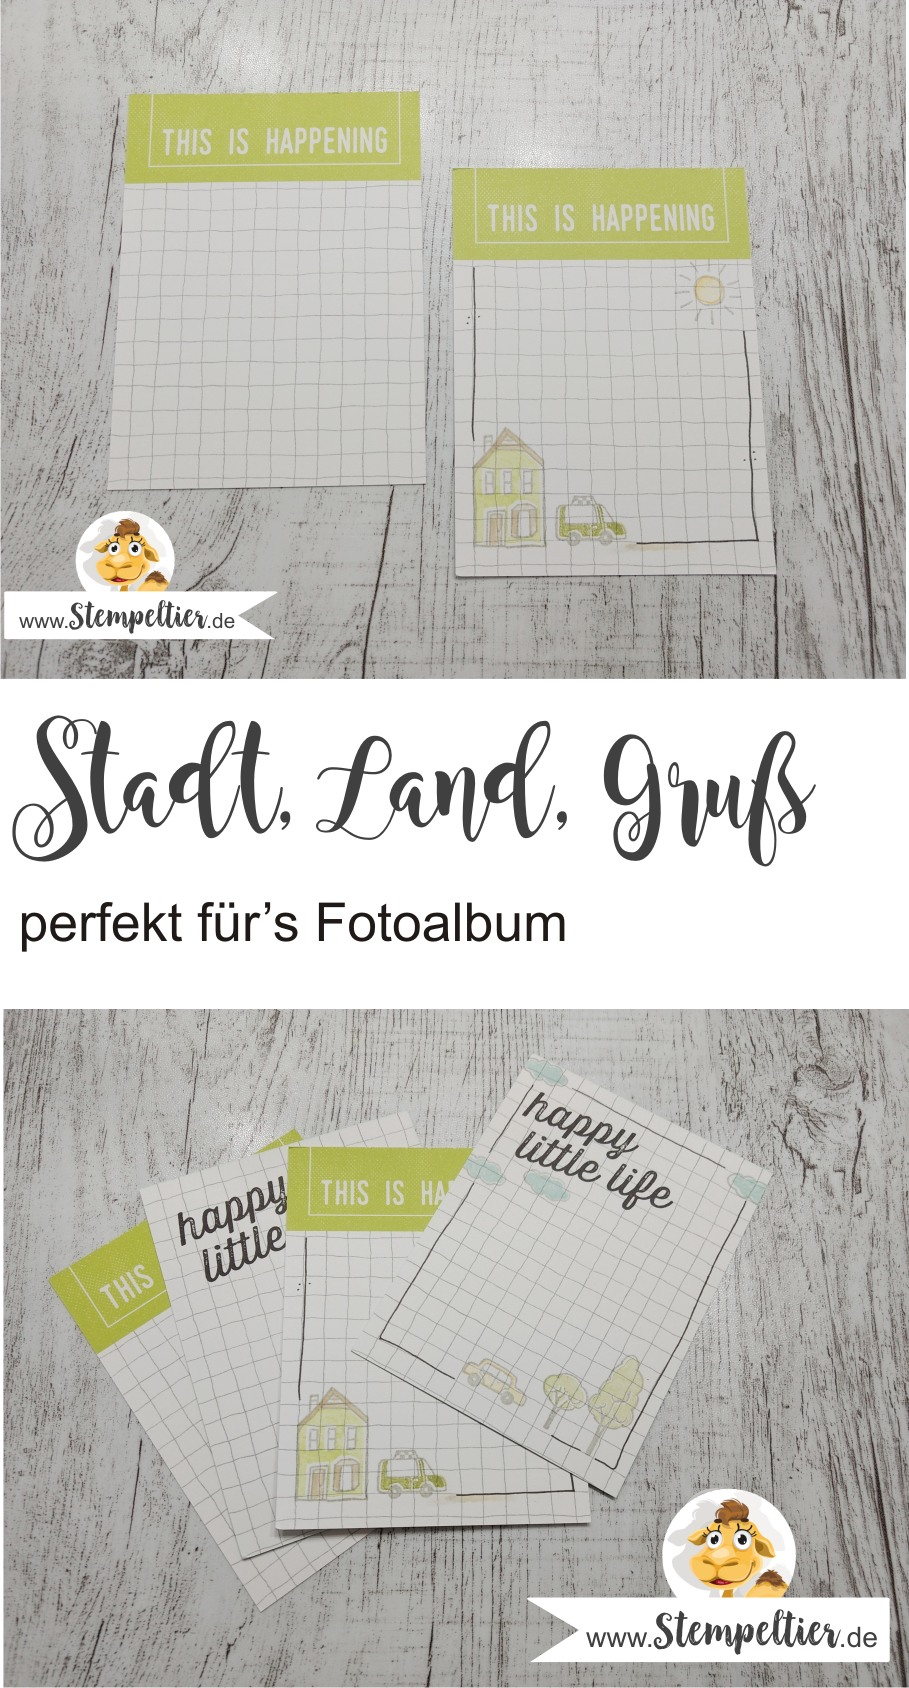 stampin up stadt land gruß auto planner journaling hostess set stempeltier